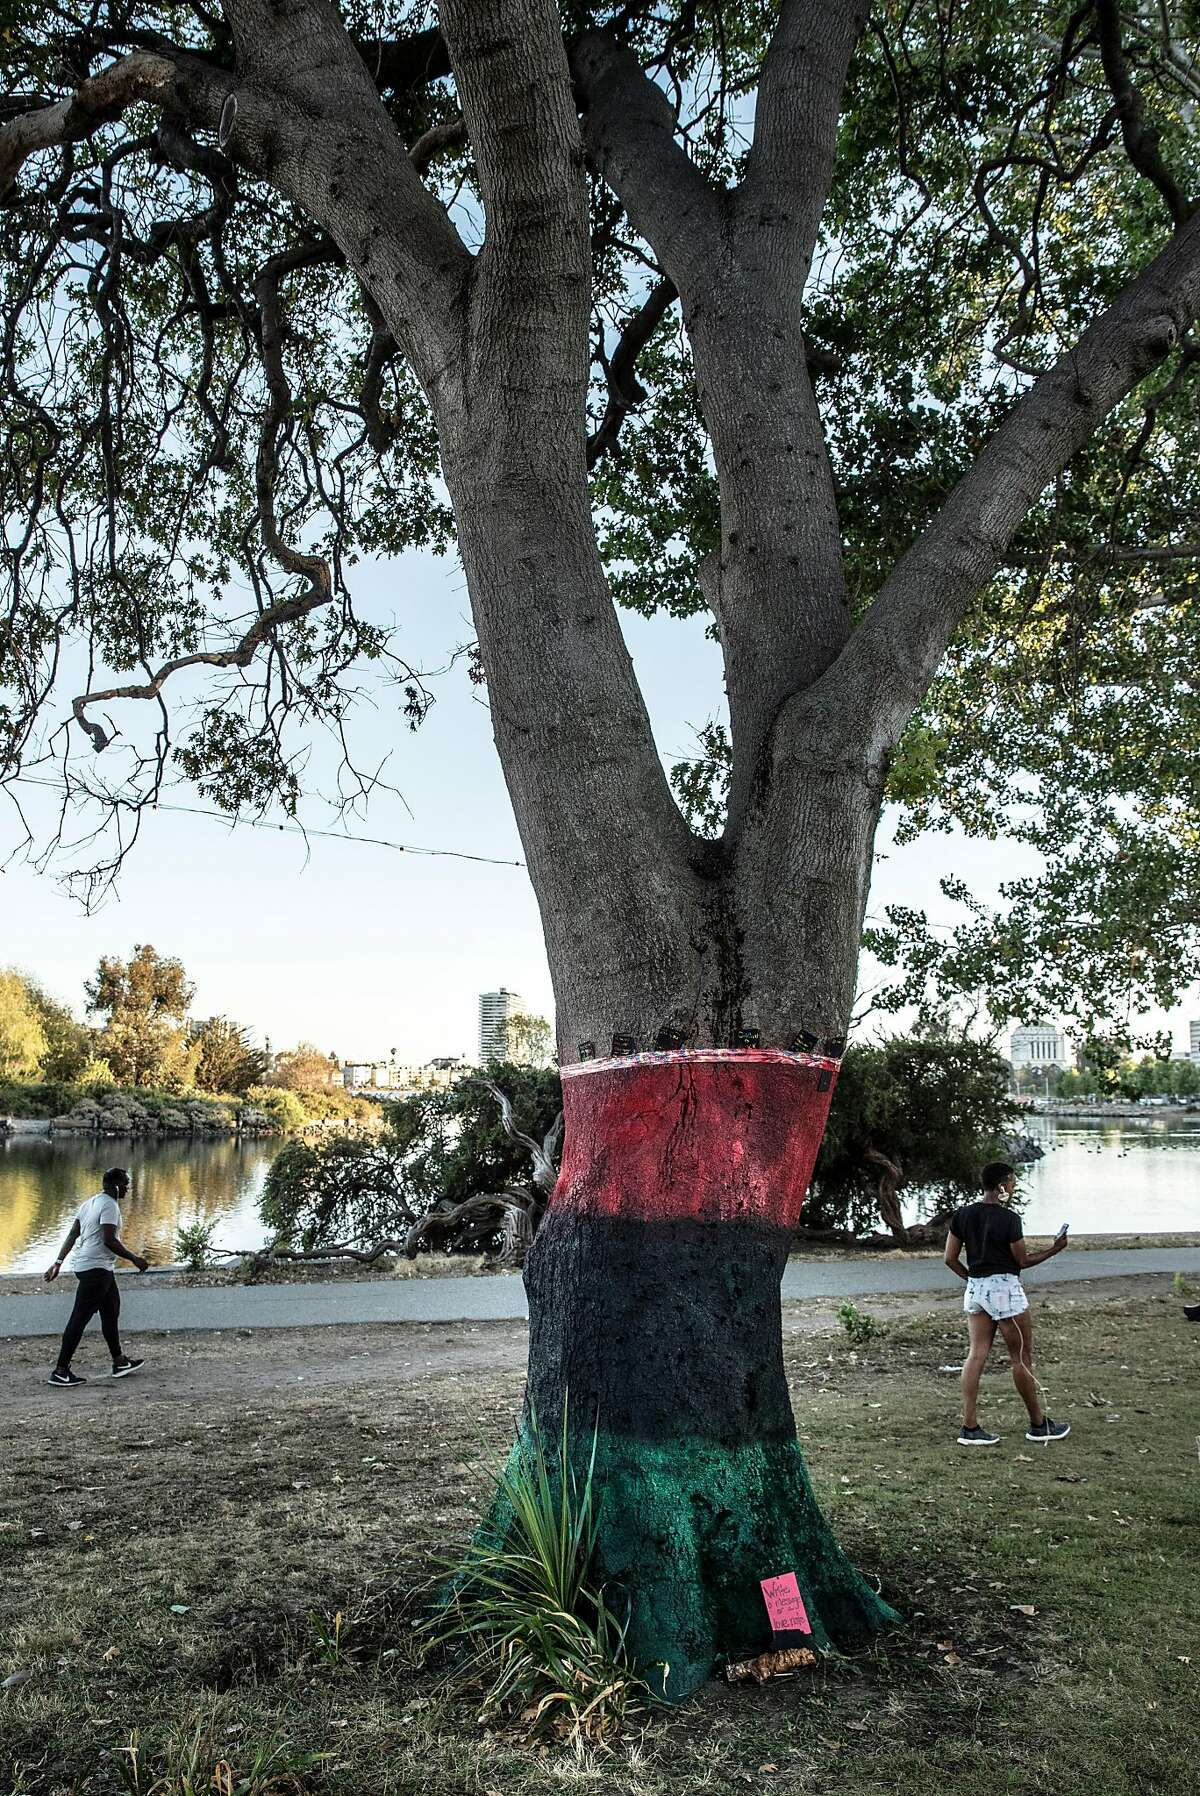 A tree that was painted with the colors of the Pan-African Flag stands in a grassy area frequented by families after what were believed to be nooses were found hanging from several trees in the area along the shore of Lake Merritt in Oakland, Calif., on Wednesday, June 17, 2020. After the discovery of the nooses, local residents decided to paint the tree with the colors of the flag to reclaim the tree and offer a place for anyone to leave prayers or messages rather than let the memory of hate remain.